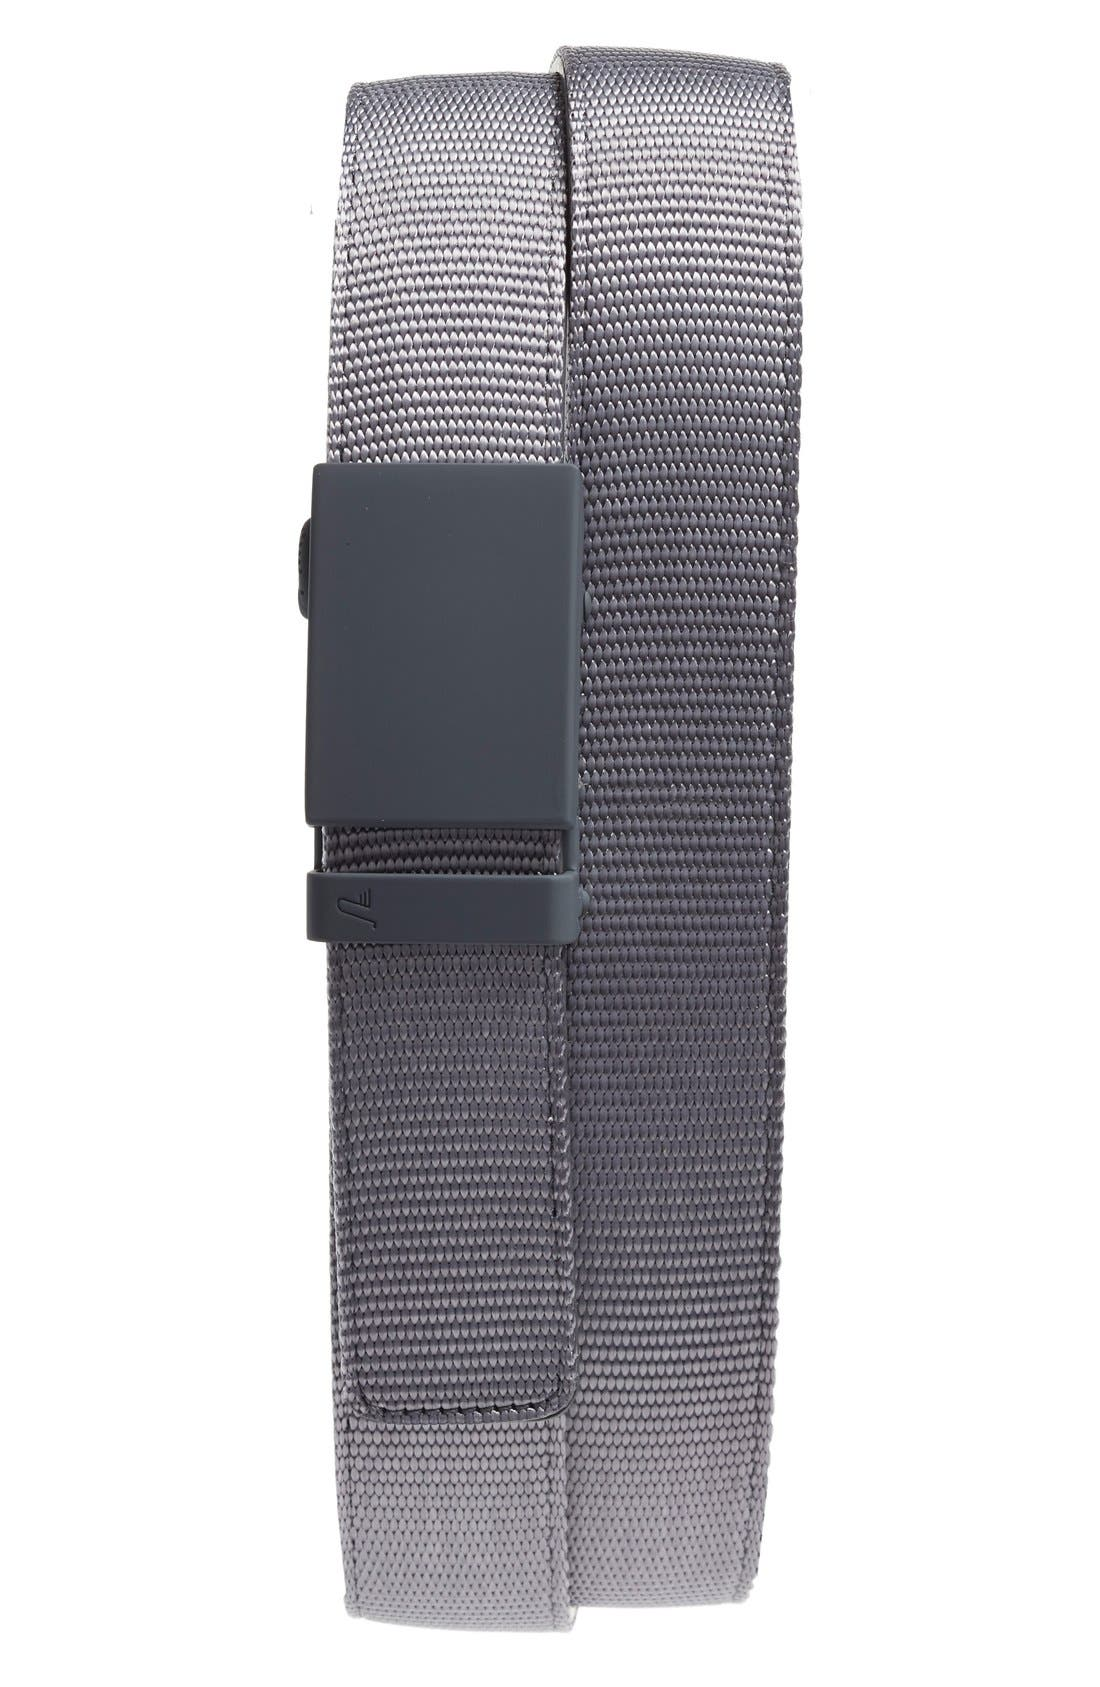 Alternate Image 1 Selected - Mission Belt Nylon Belt